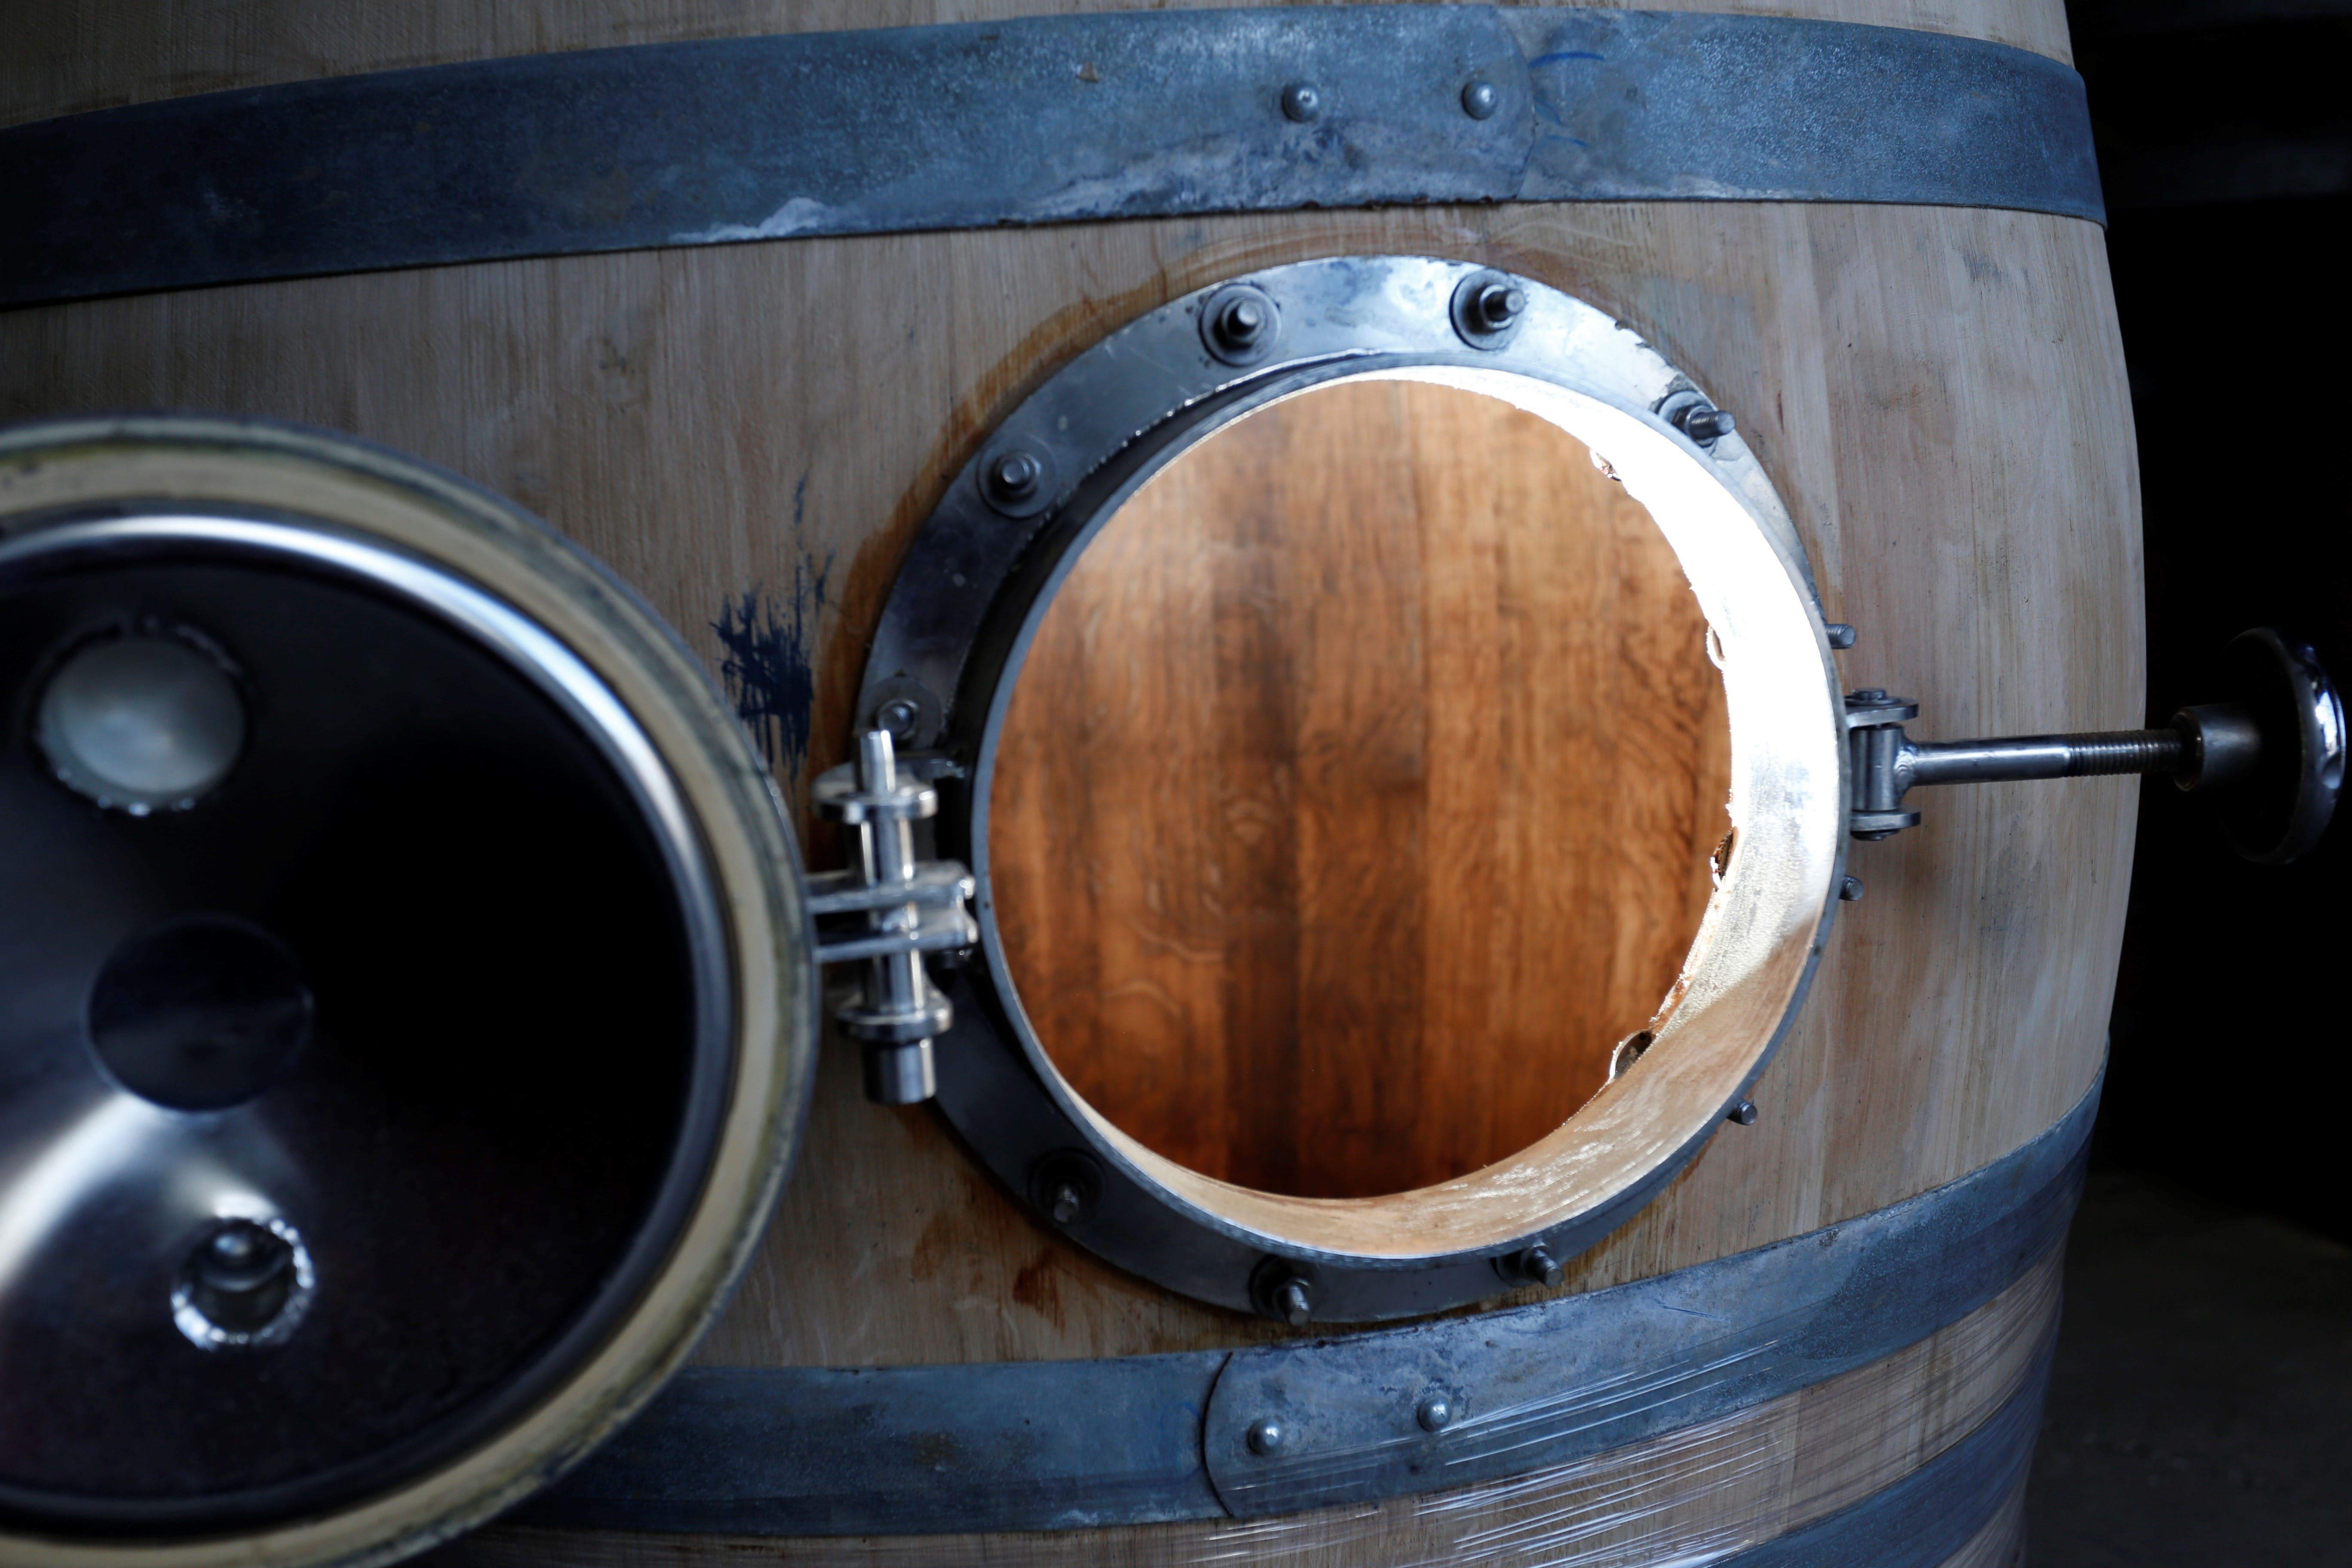 USED, 600L/159-gal mini-fermentor (small tank). Imported from Europe.  - USED Wine Puncheons (400L to 600L) - sold by Rocky Mountain Barrel Company